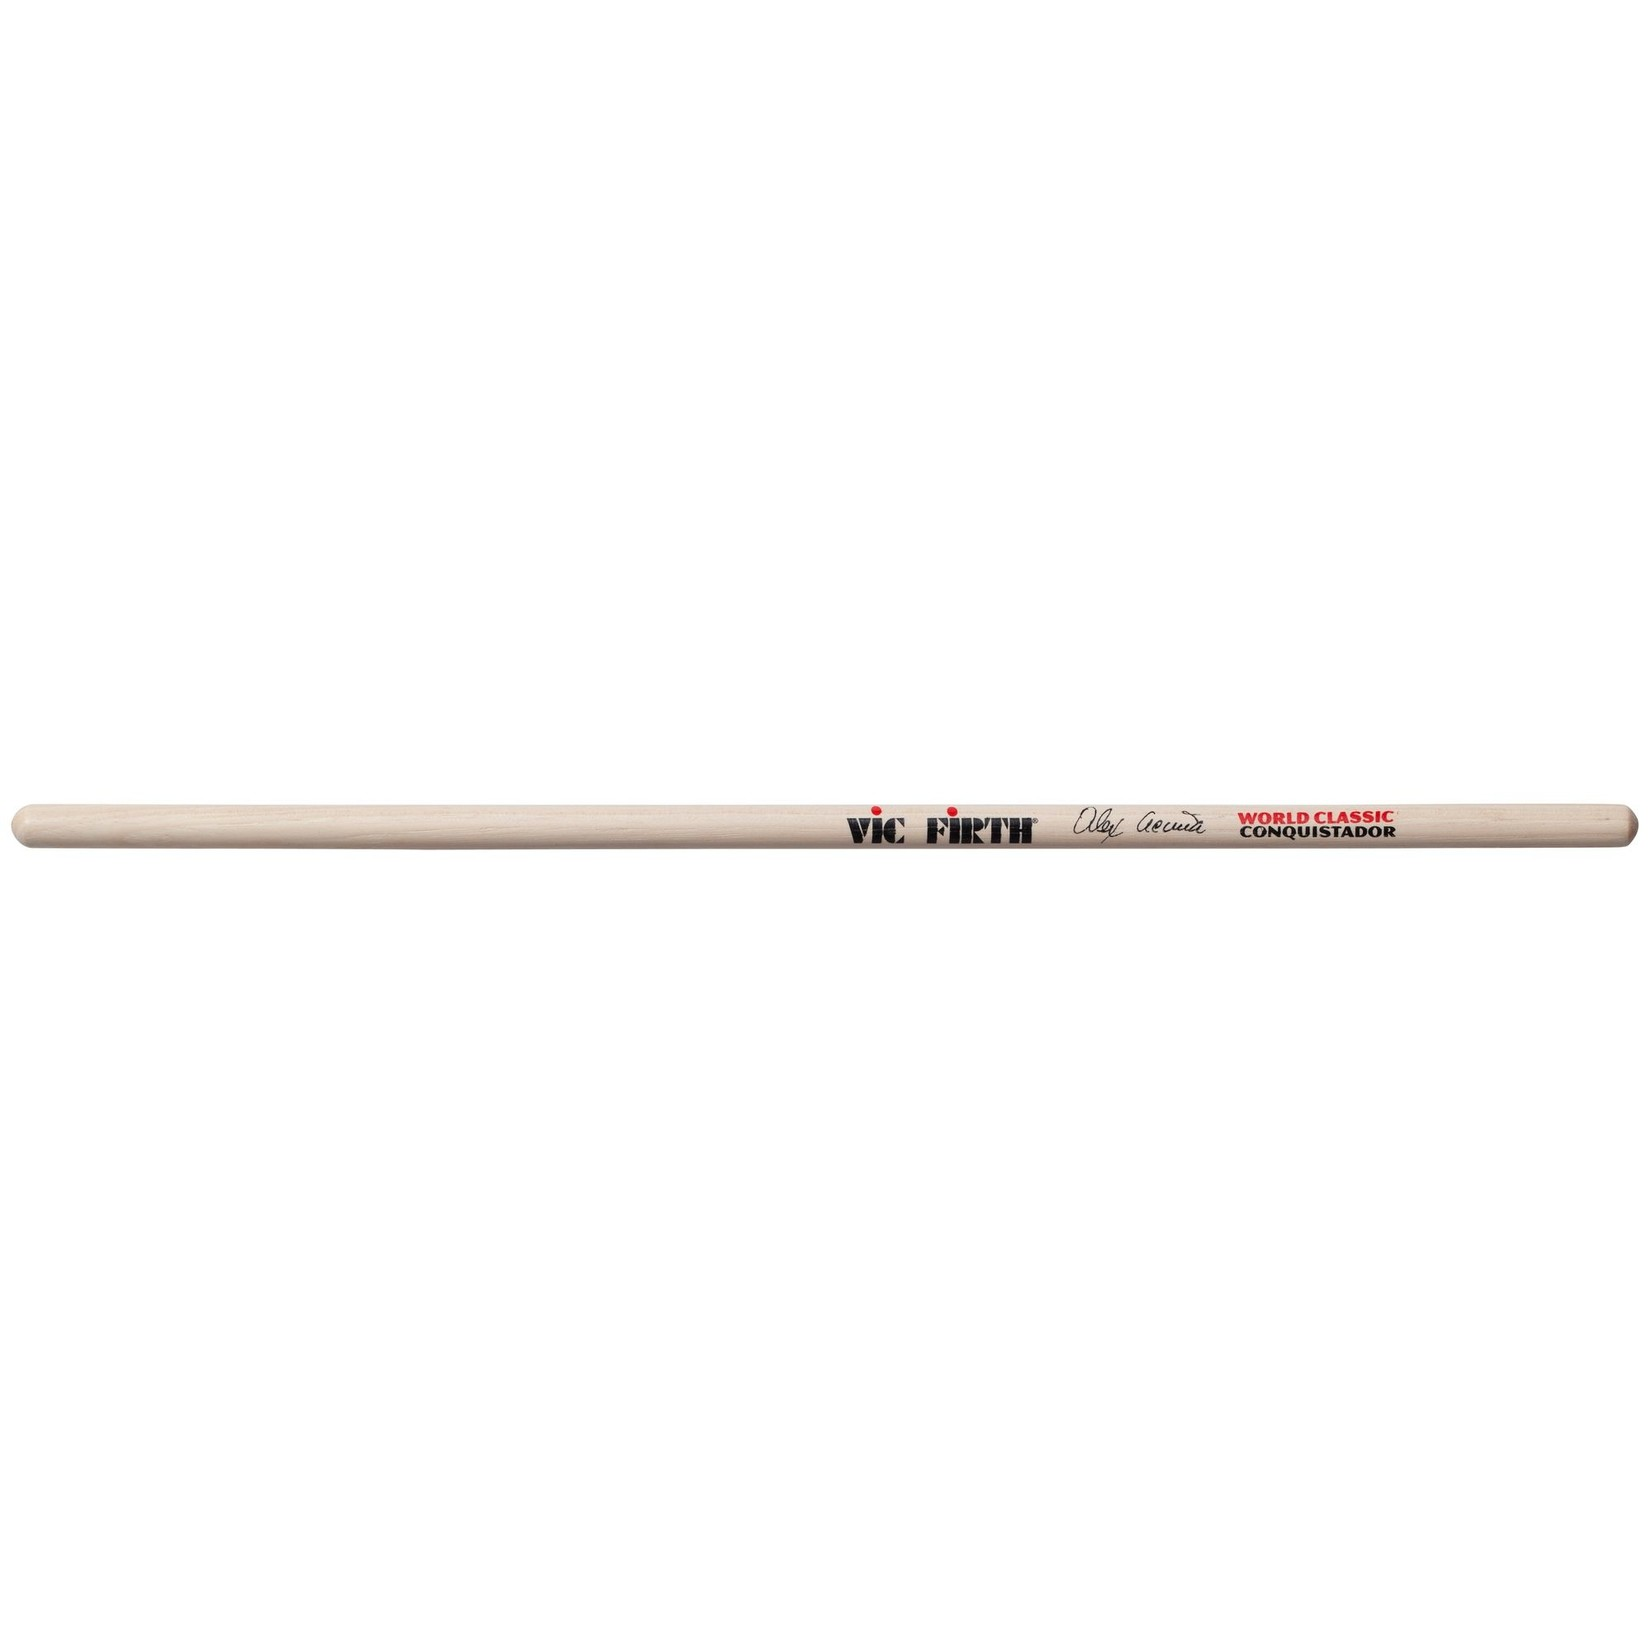 Vic Firth Vic Firth World Classic® -- Alex Acuña Conquistador (clear) timbale